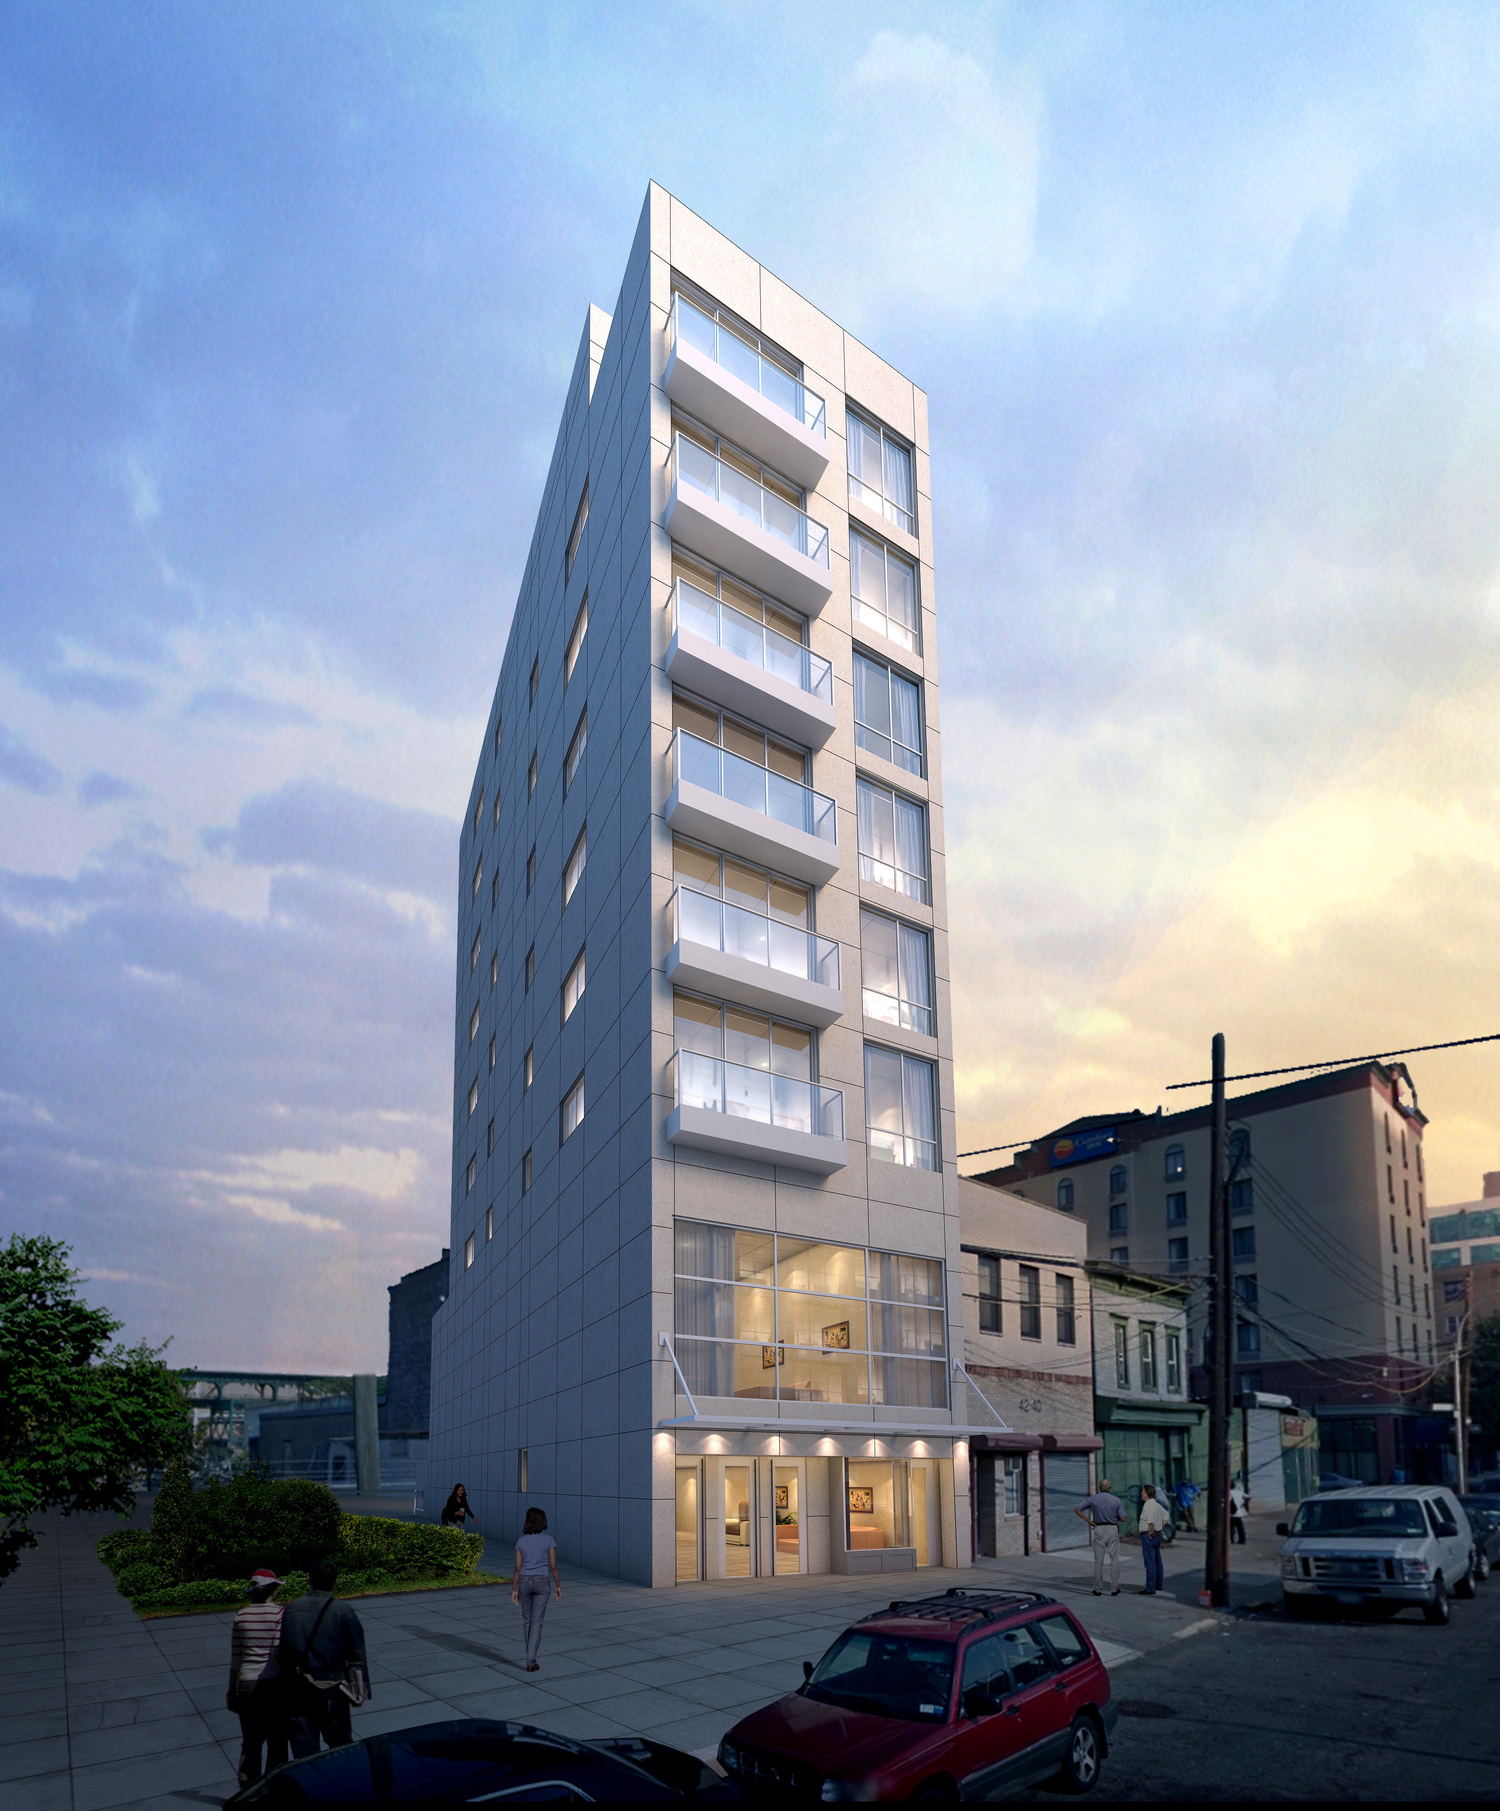 42-44 Crescent Street, rendering by Architects' Studio